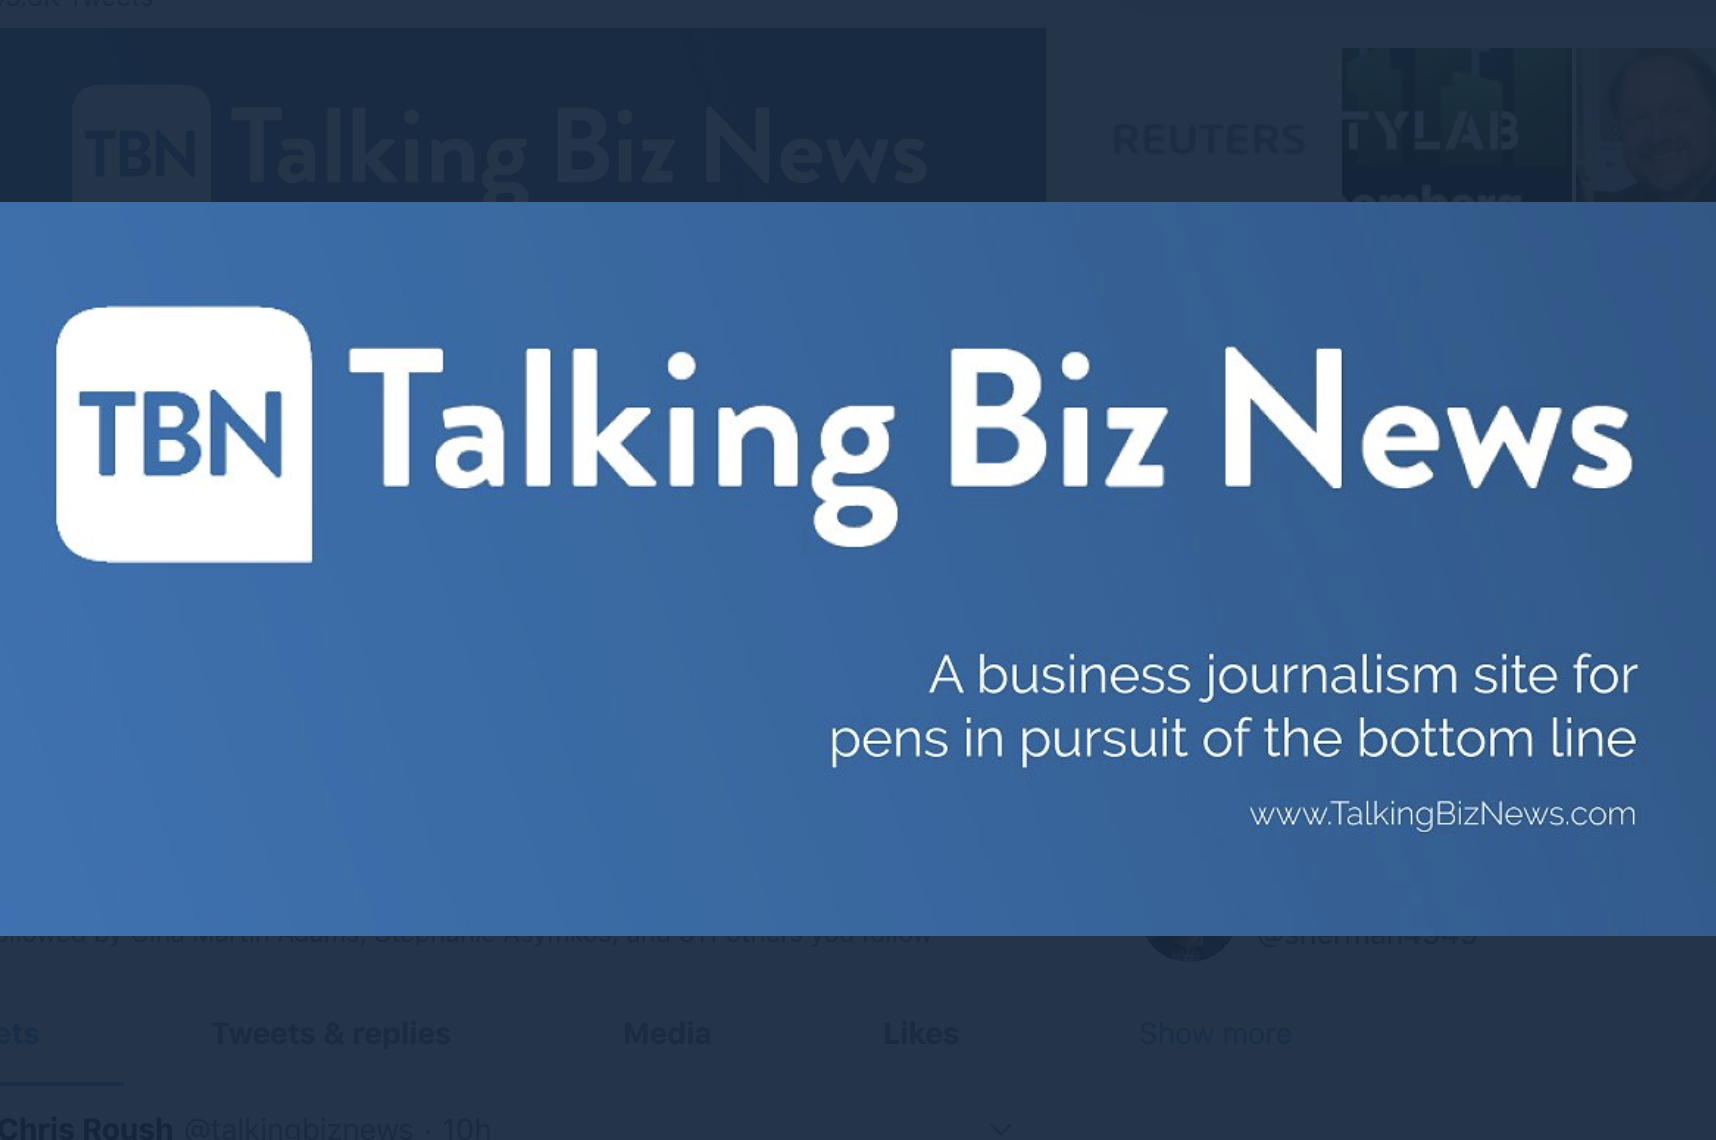 When business journalists become the product